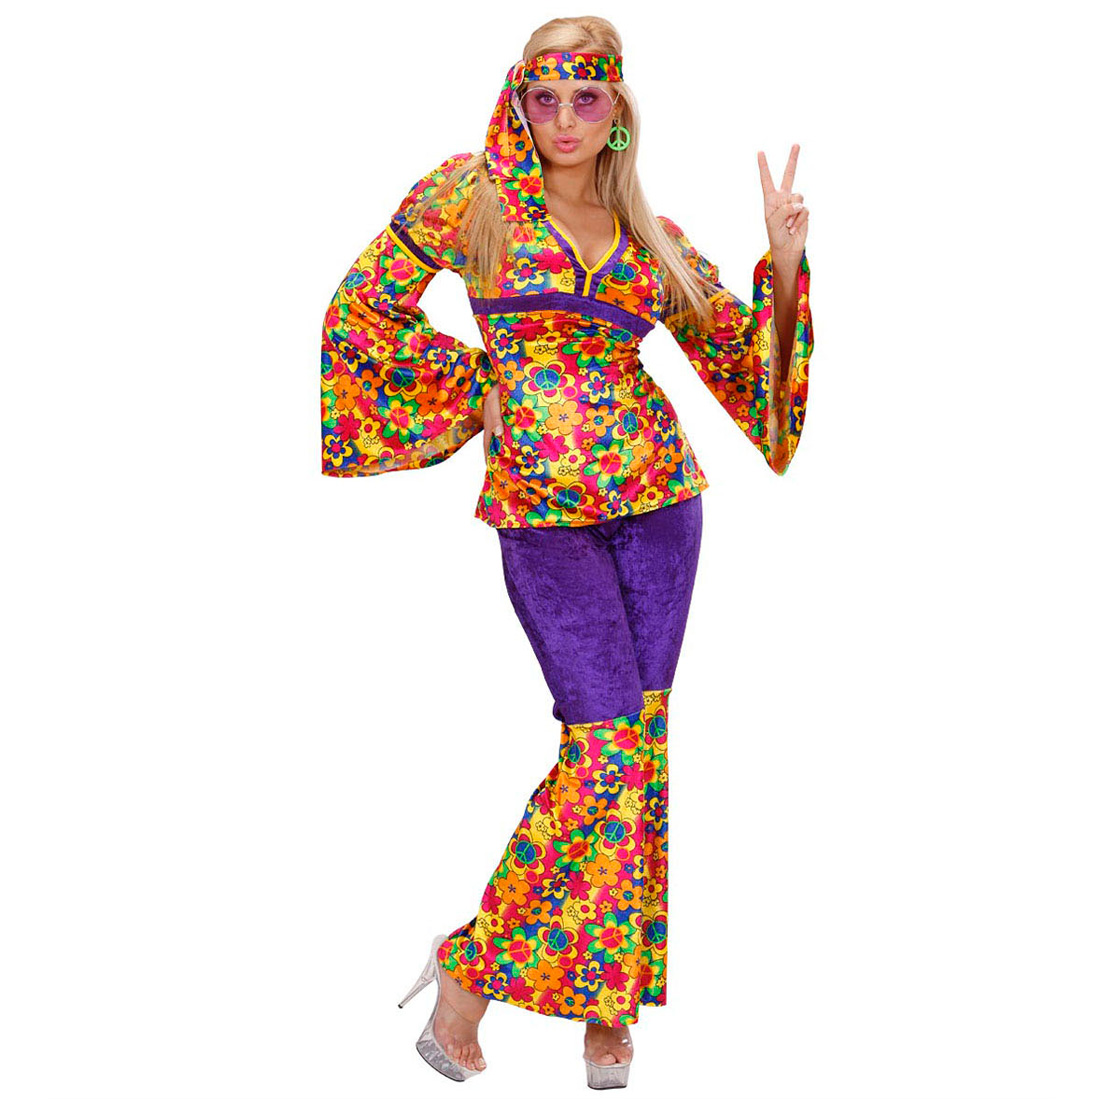 70er jahre hippie damen kost m flower power mode hippiekost m woodstock outfit ebay. Black Bedroom Furniture Sets. Home Design Ideas